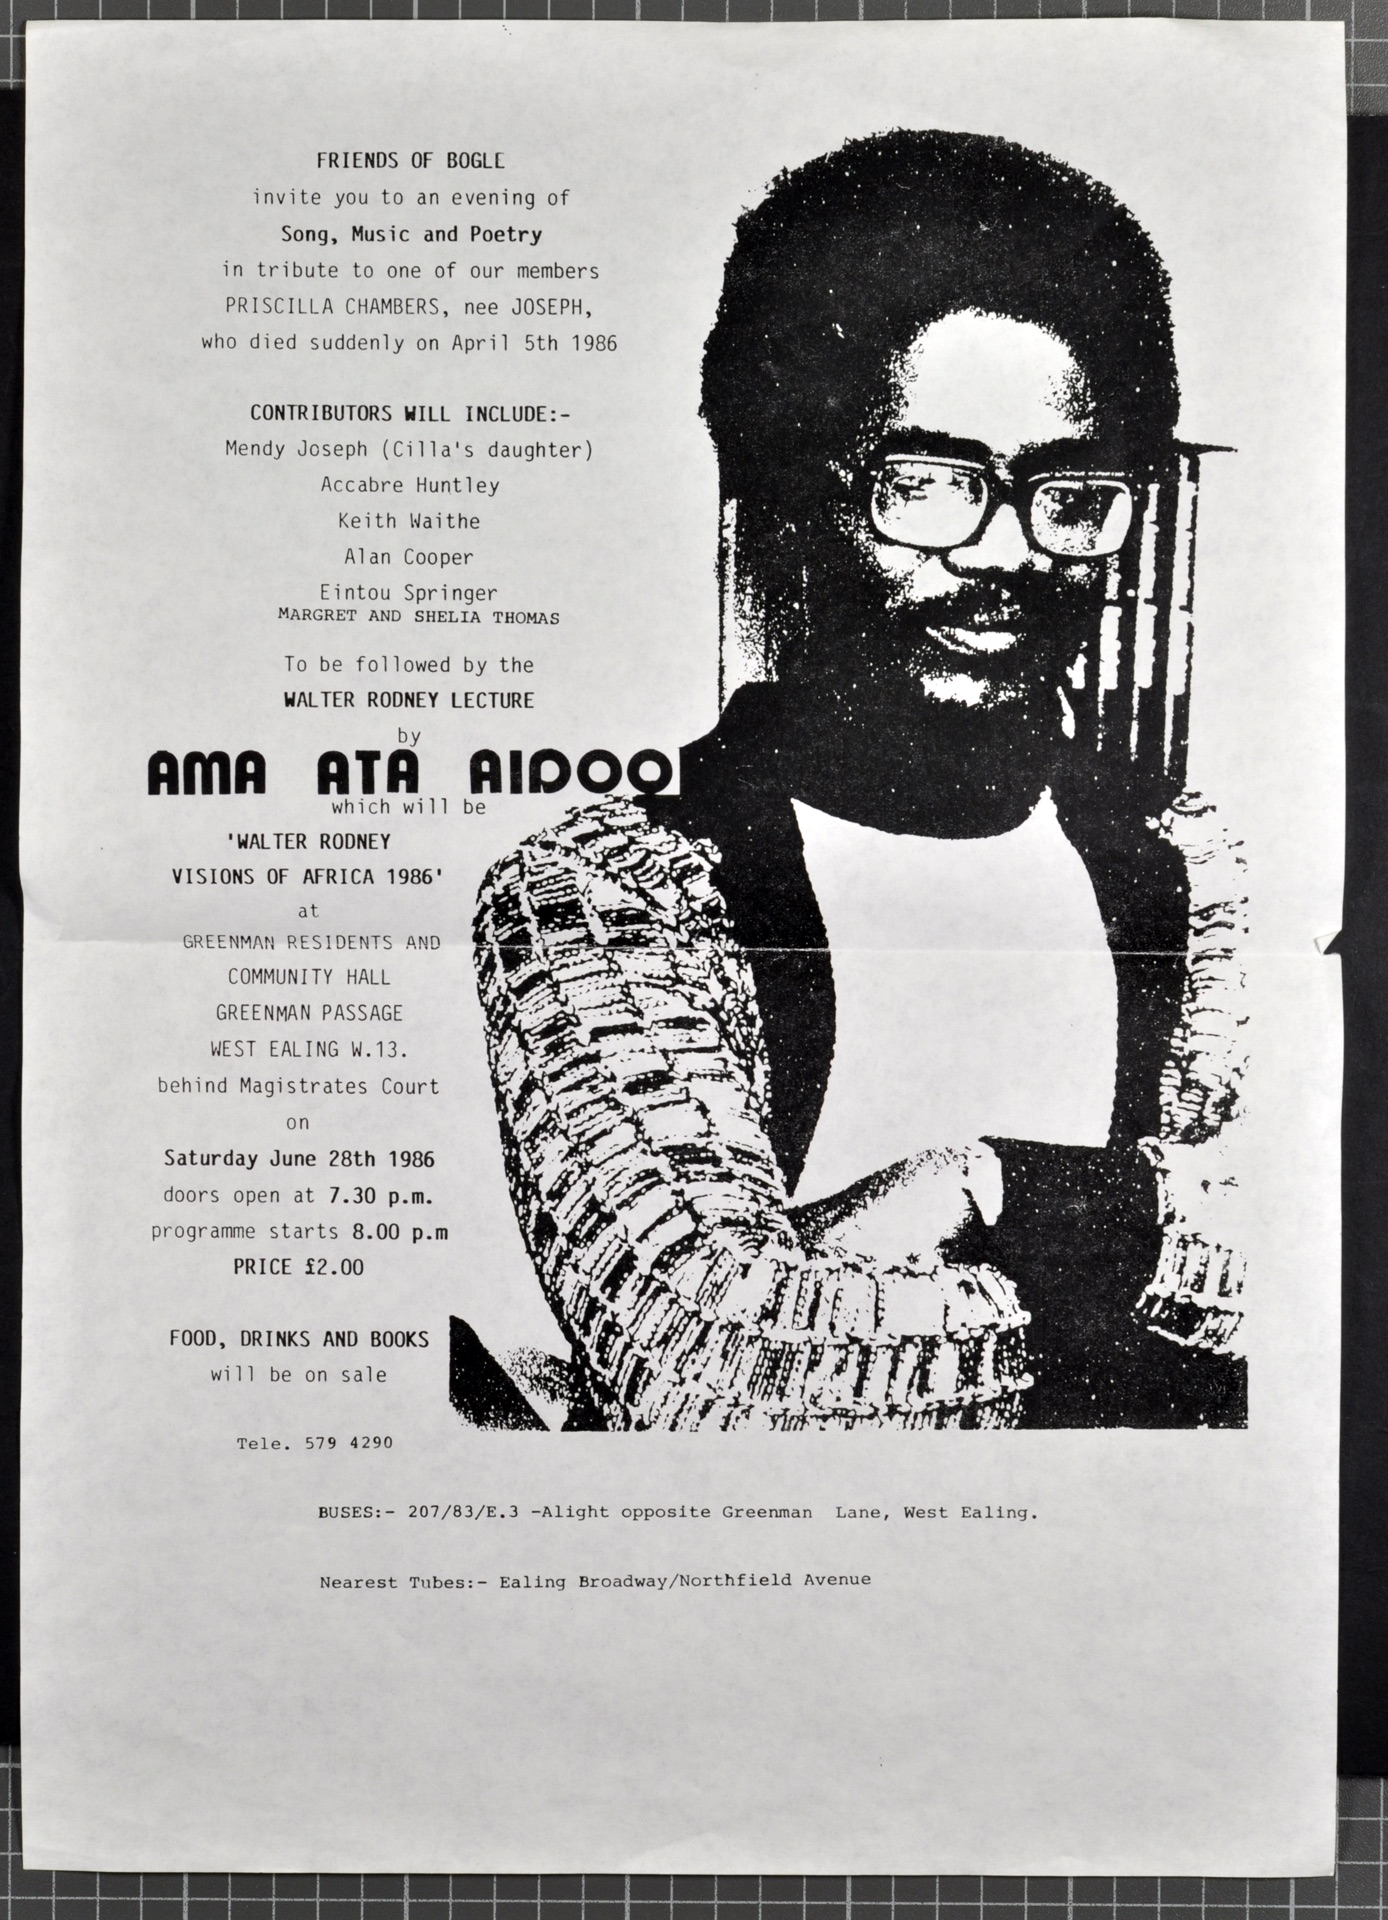 _27 Friends of Bogle-Tribute to Priscelle Chambers _ Walter Rodney Lecture (Ama Ata Aidoo). 28th Jun